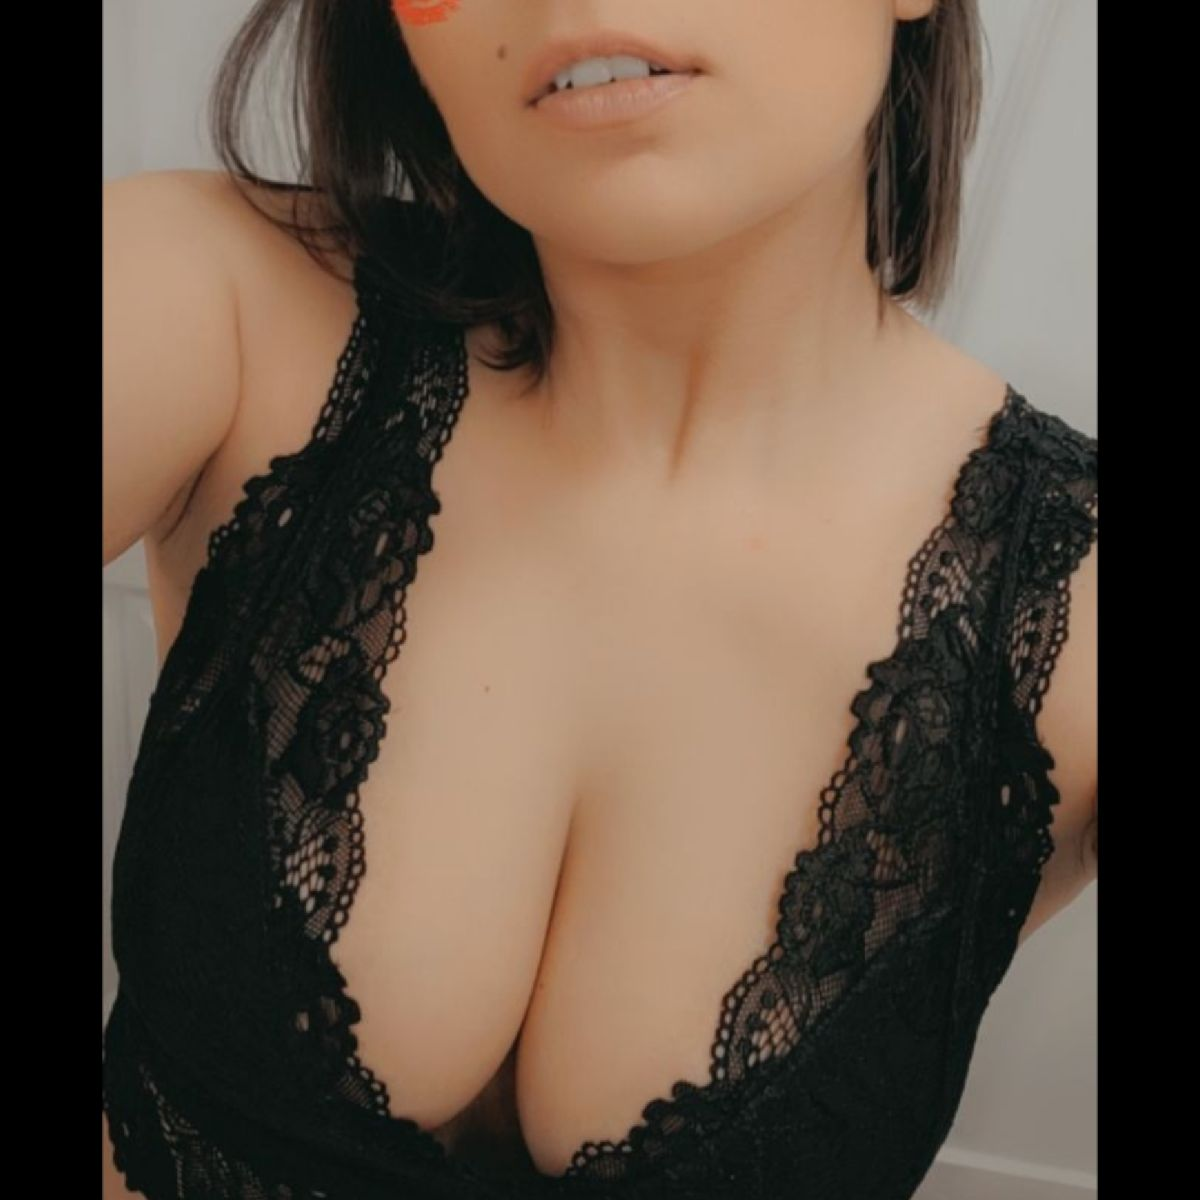 Onlyfans free Nicole89xo onlyfans leaked